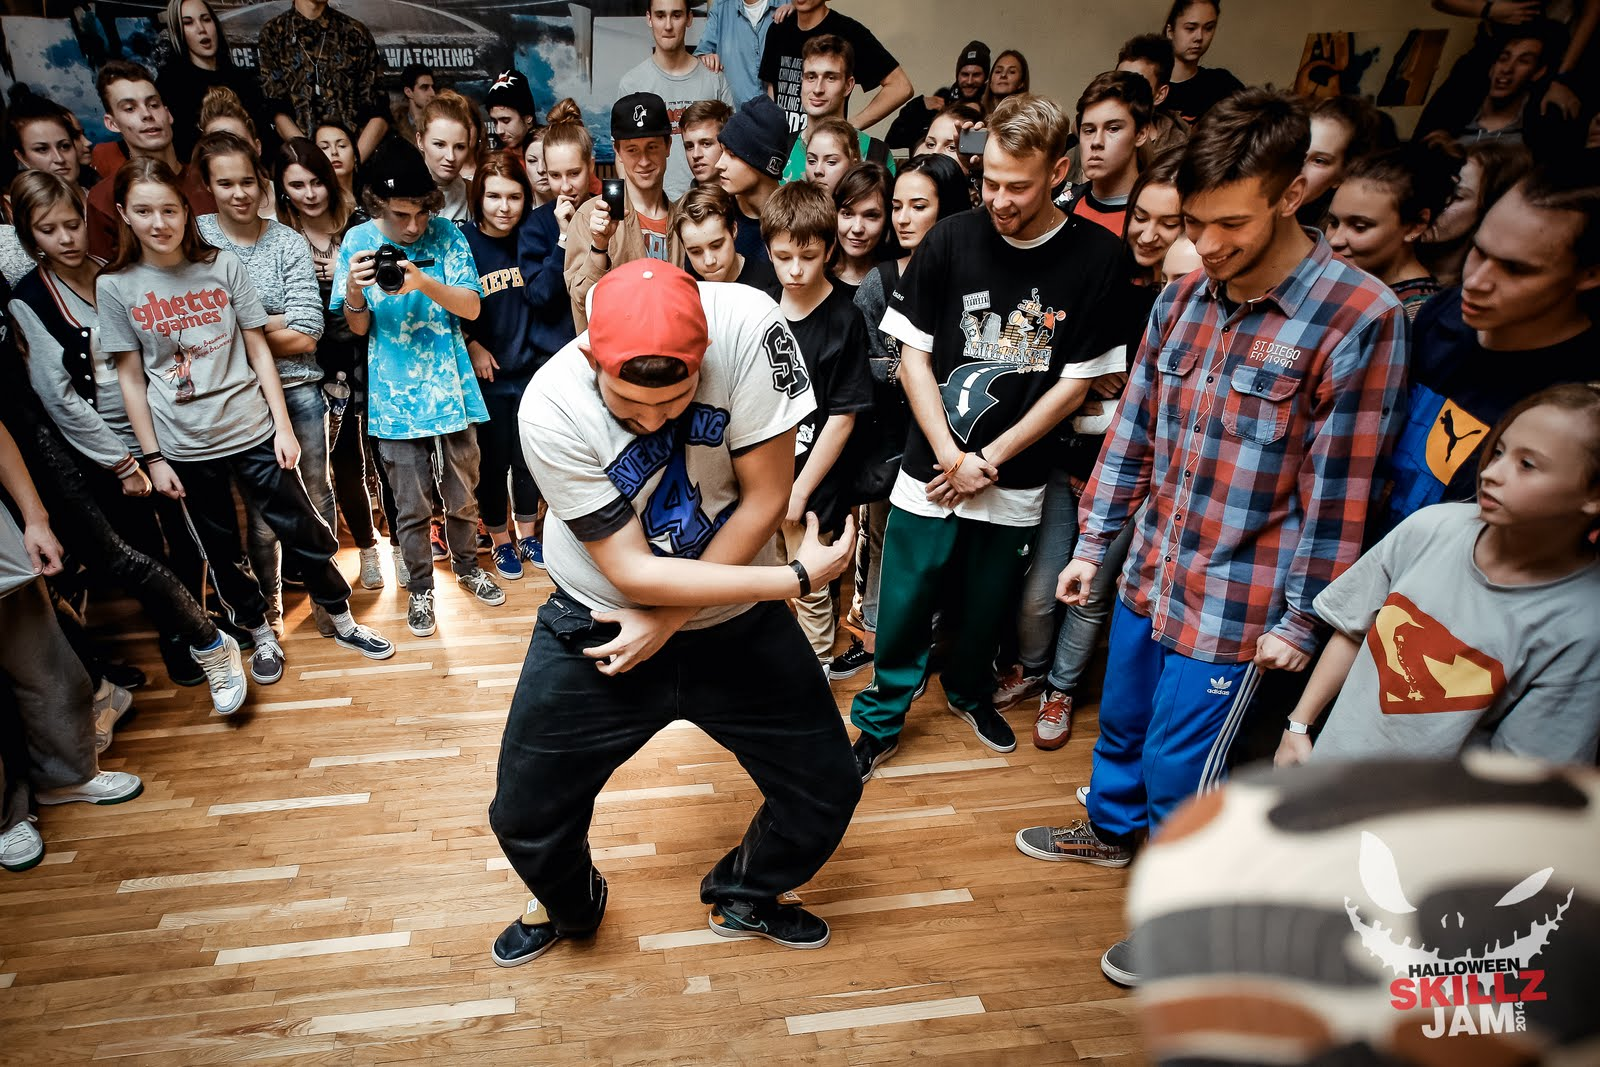 SKILLZ Halloween Jam Battles - a_MG_5057.jpg